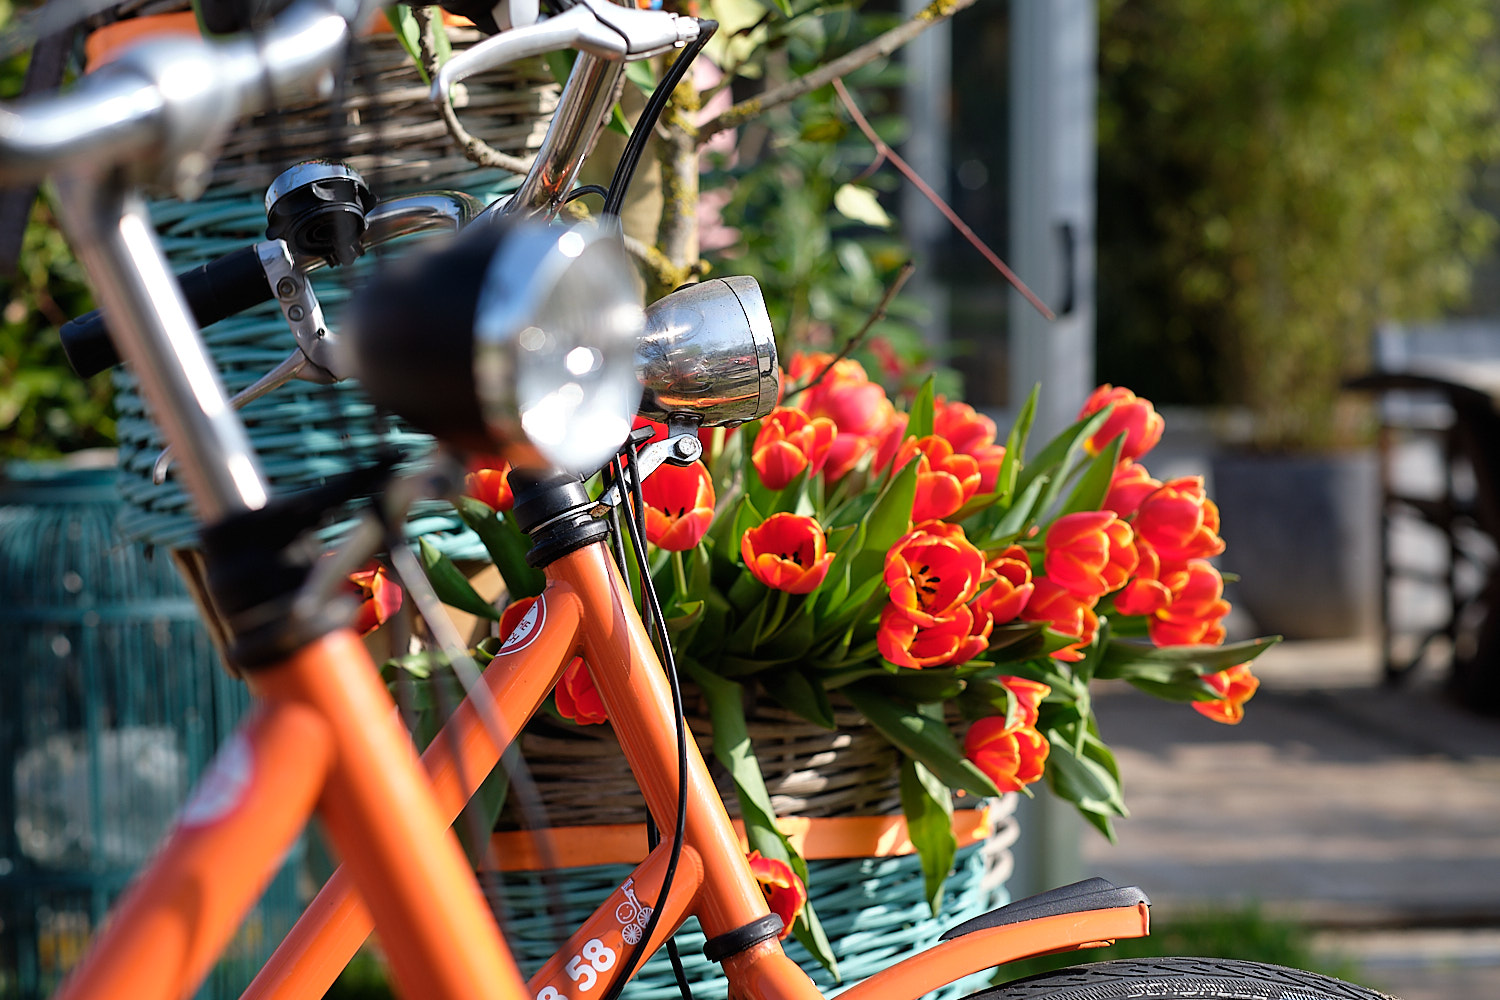 Discovering holland when the tulips blossom on an orange rental bicycle. Stop over for a piece of cake.